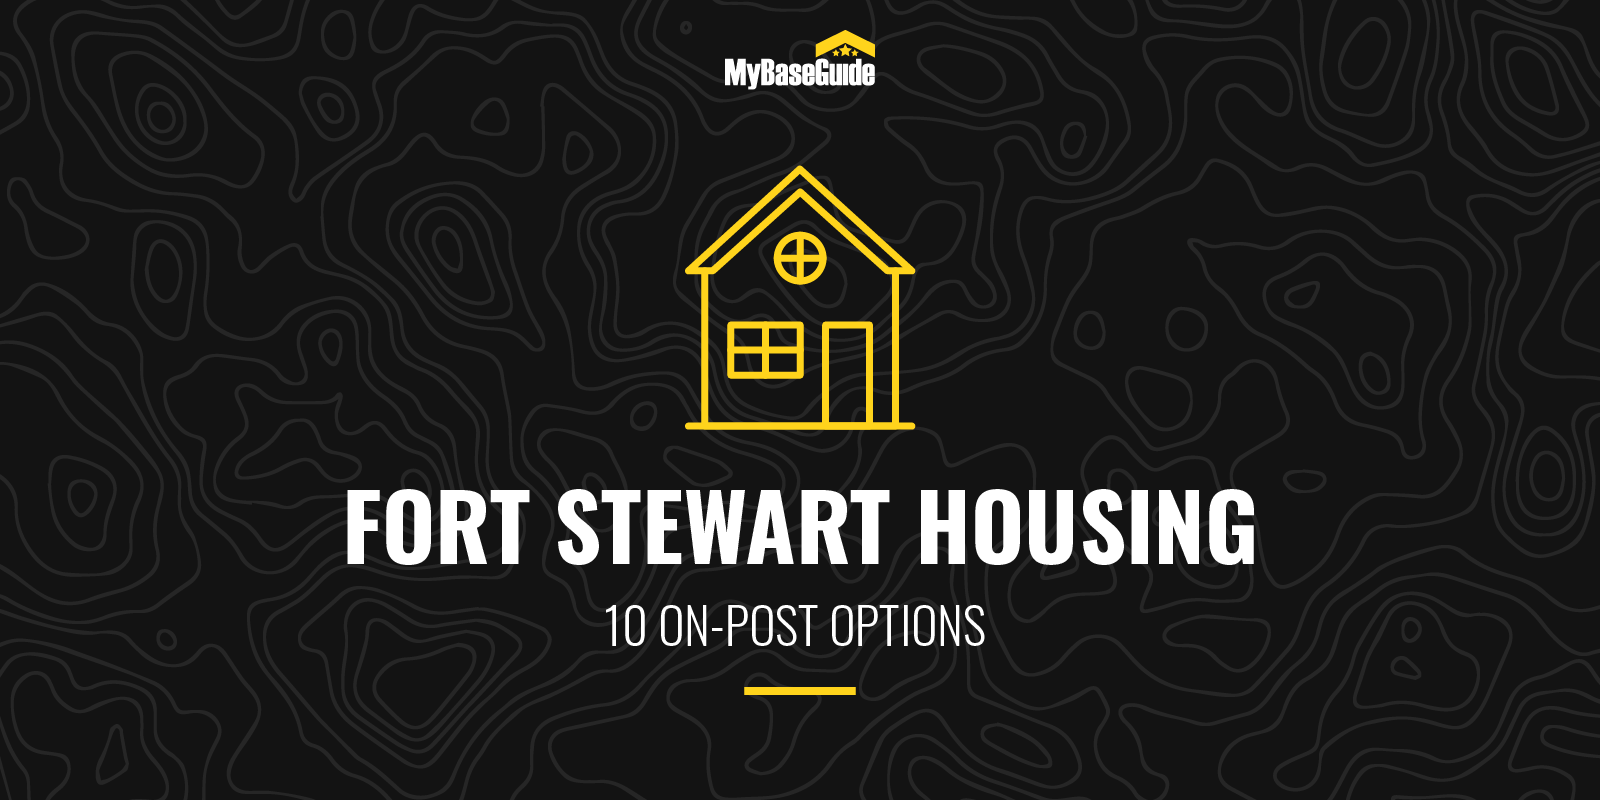 Fort Stewart Housing: 10 On Post Options